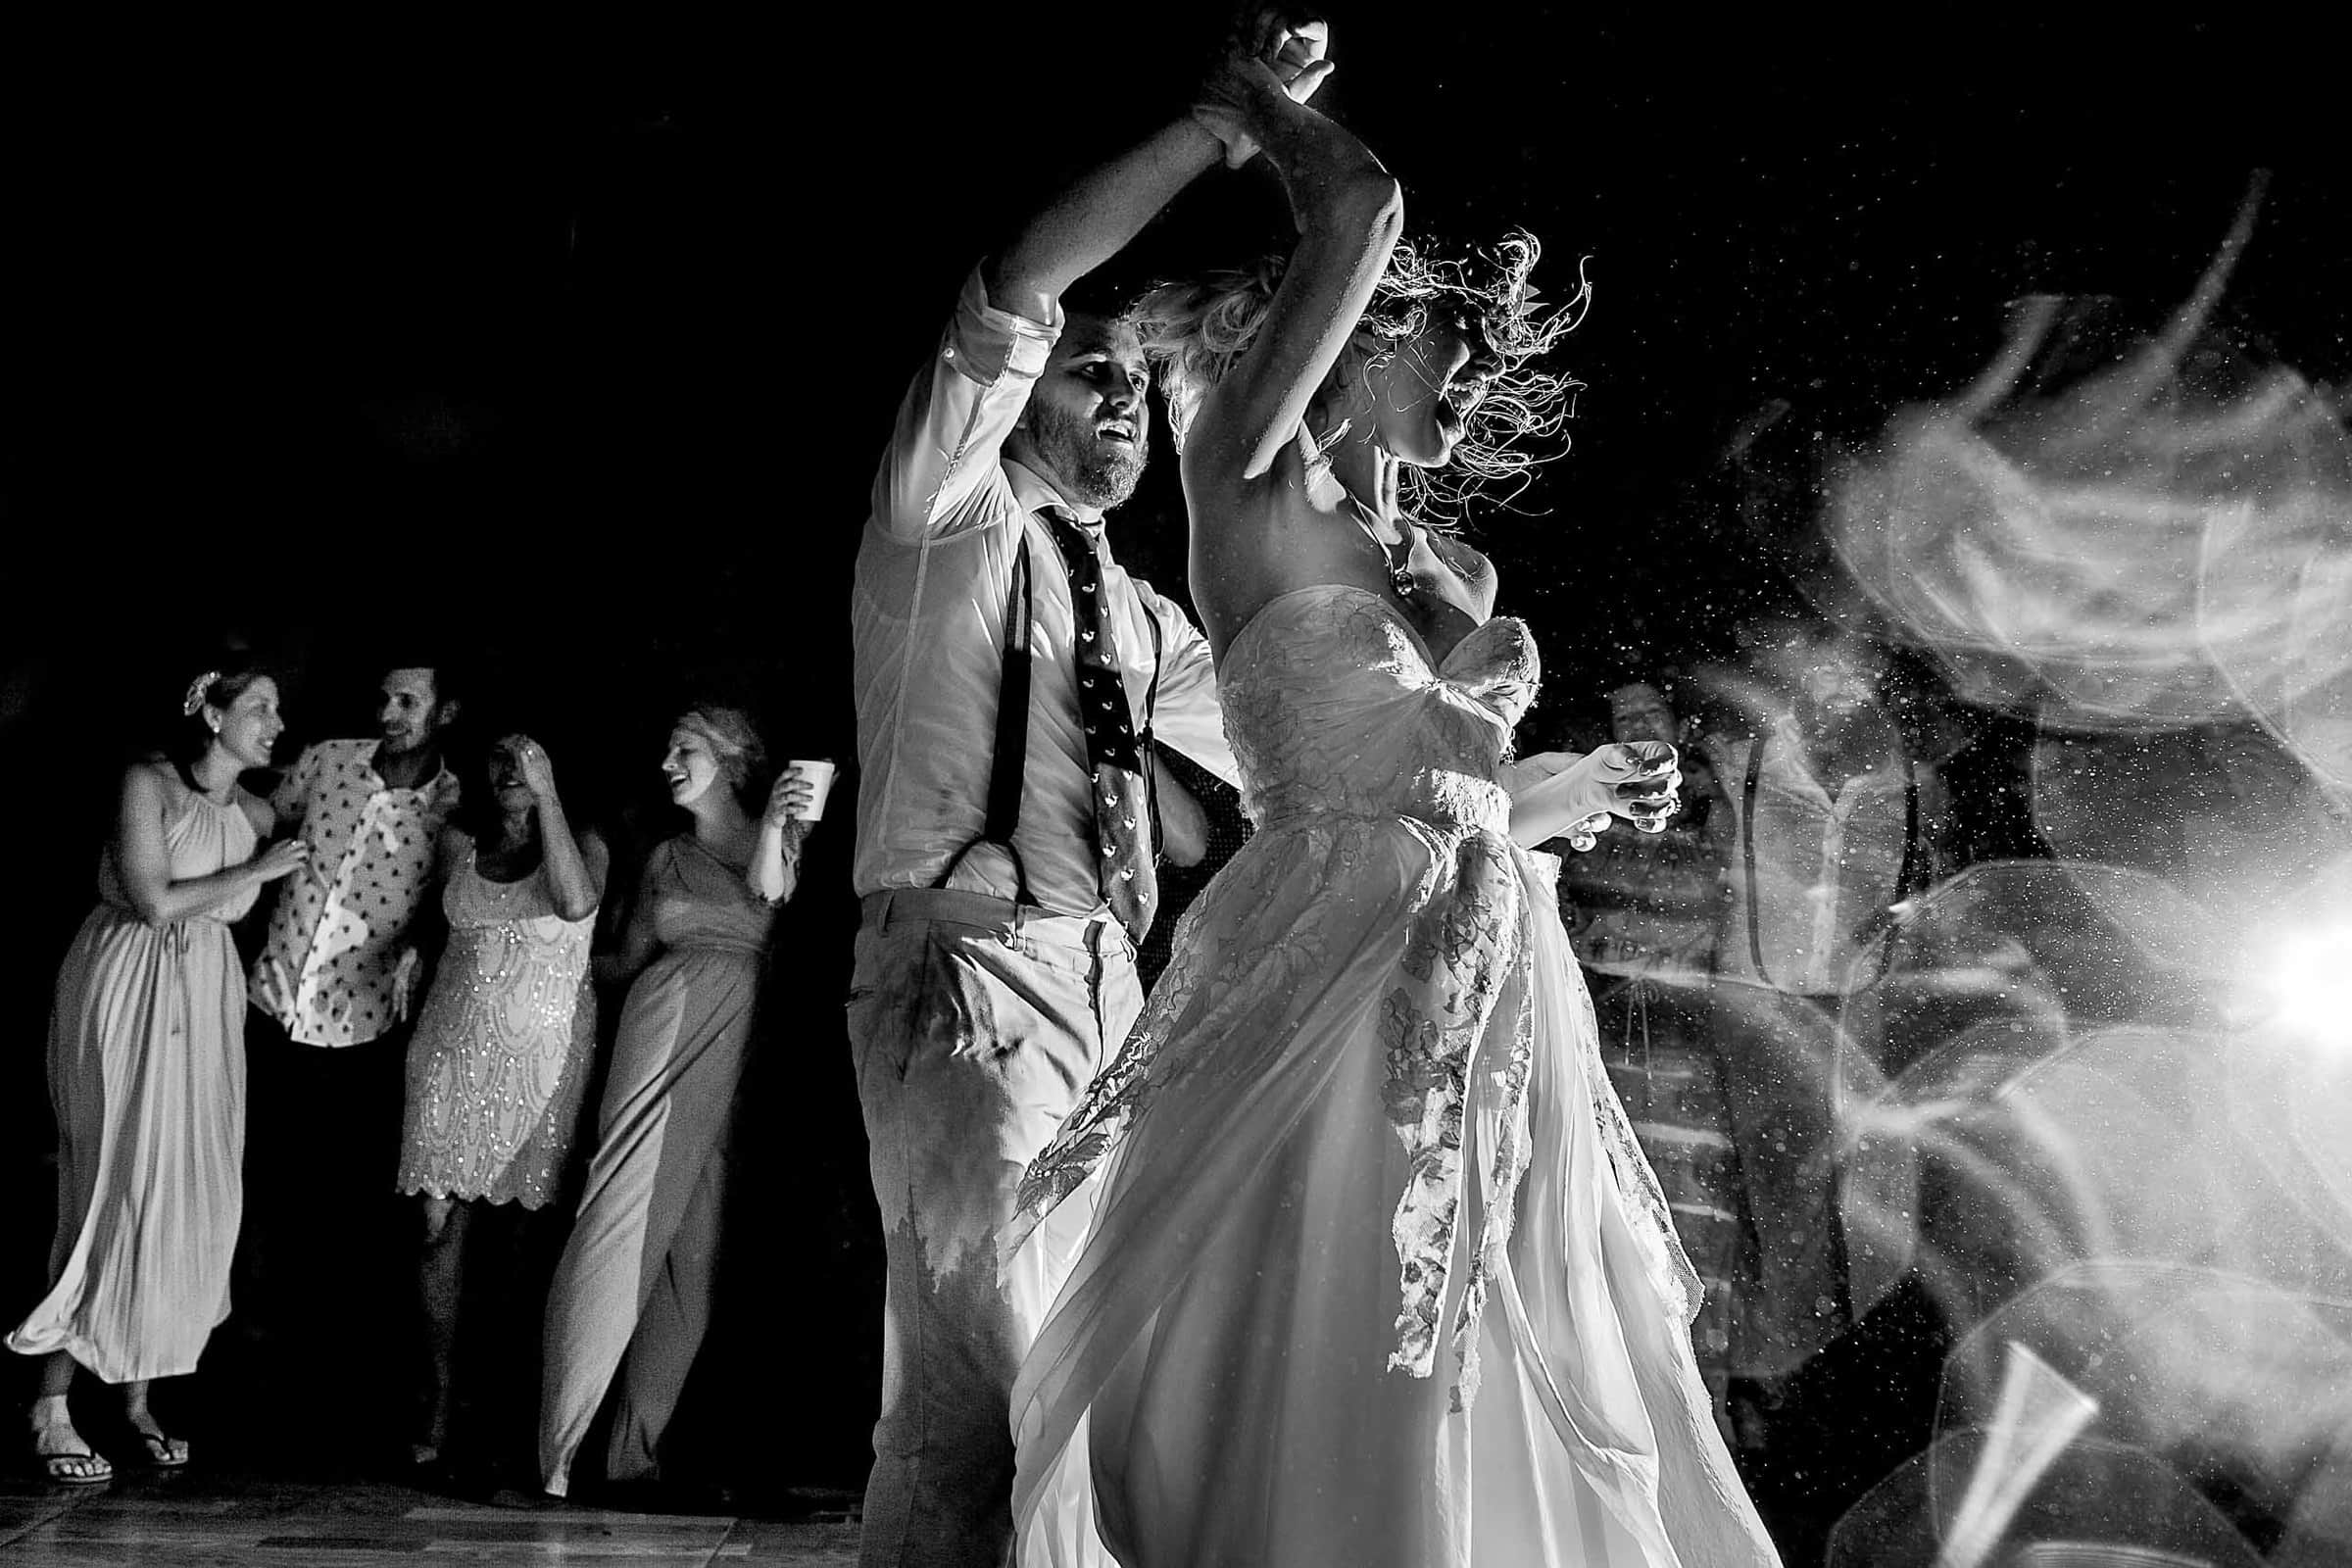 Bride and groom dancing wild in a rain storm during their Chesapeake Bay wedding ceremony in Maryland at Wades Point Inn.